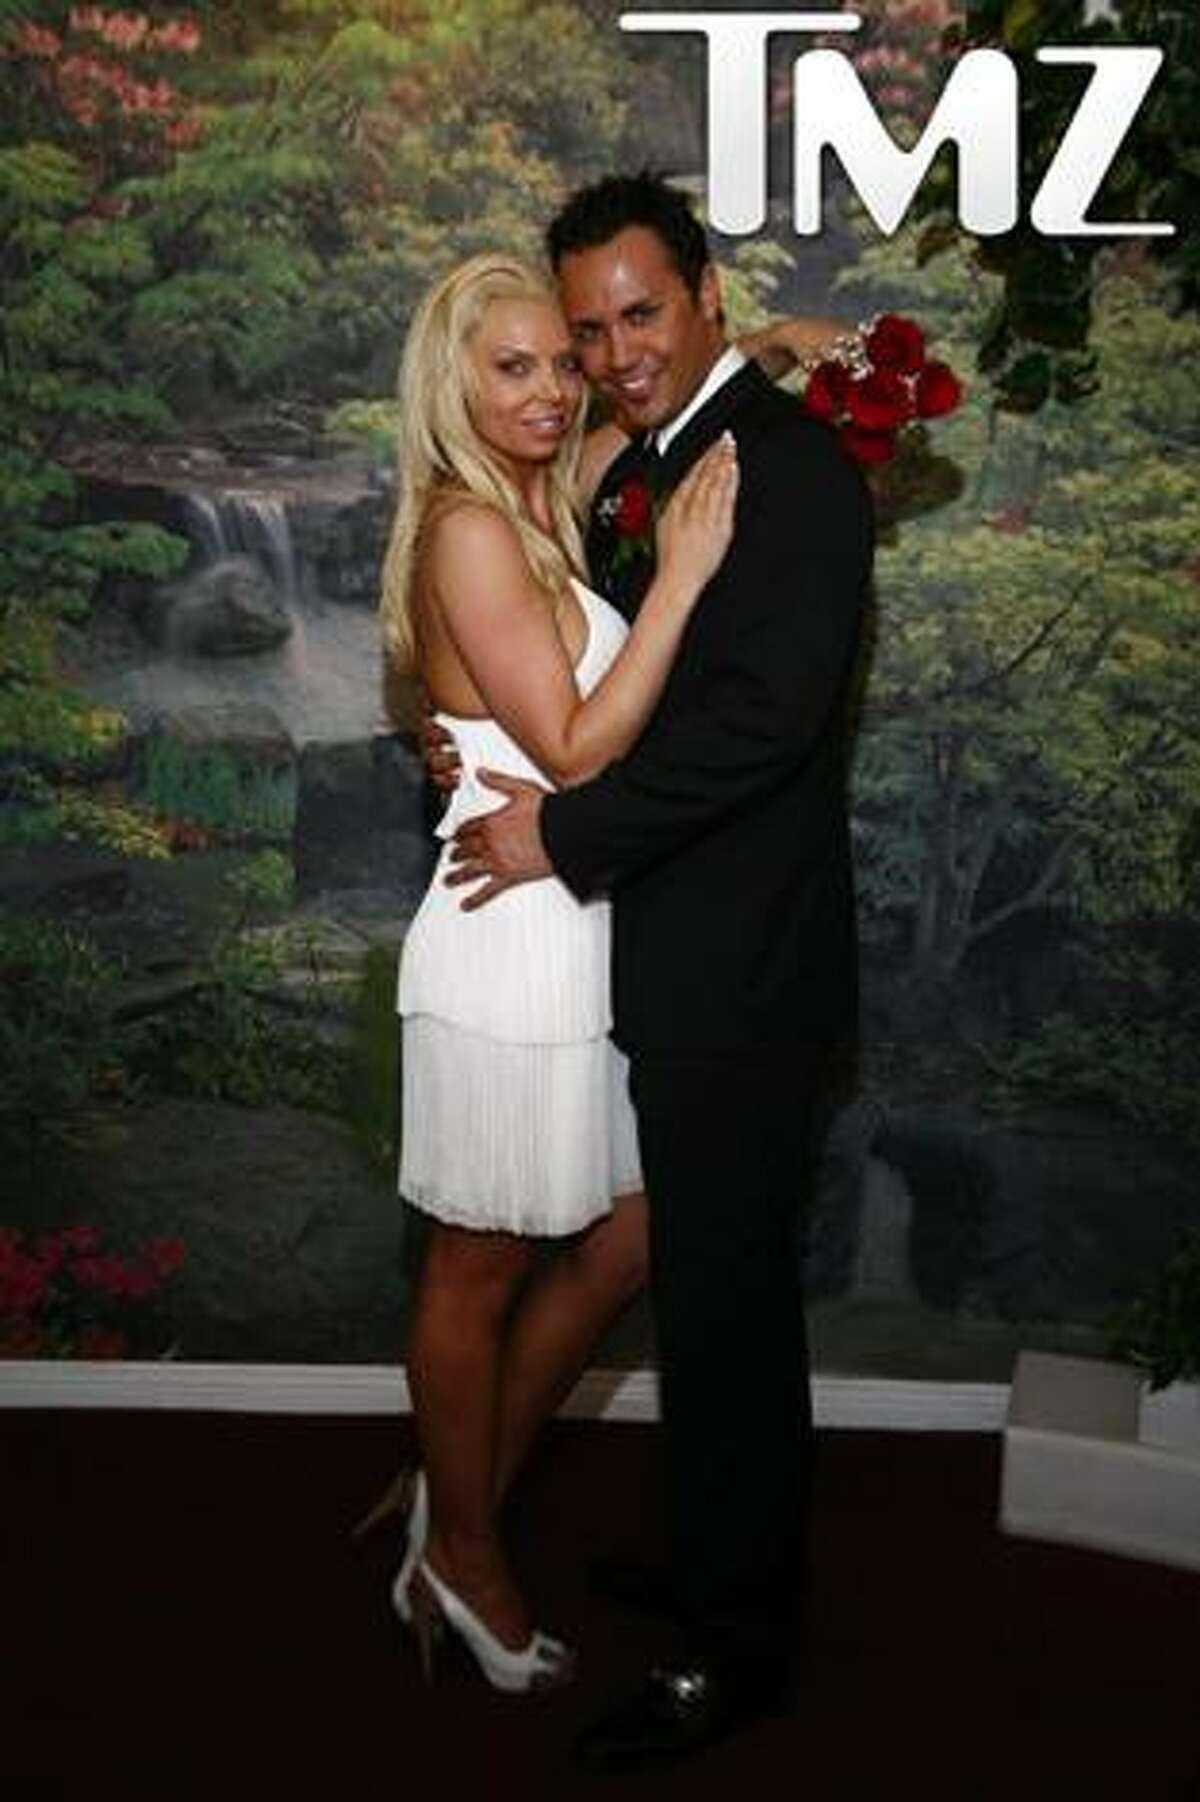 This photo provided by TMZ, shows Ryan Alexander Jenkins and Jasmine Fiore's March 18, 2009 wedding in Las Vegas. Jenkins, a reality TV contestant, is charged with killing his wife, a former swimsuit model. (AP Photo/TMZ) ** NO SALES **